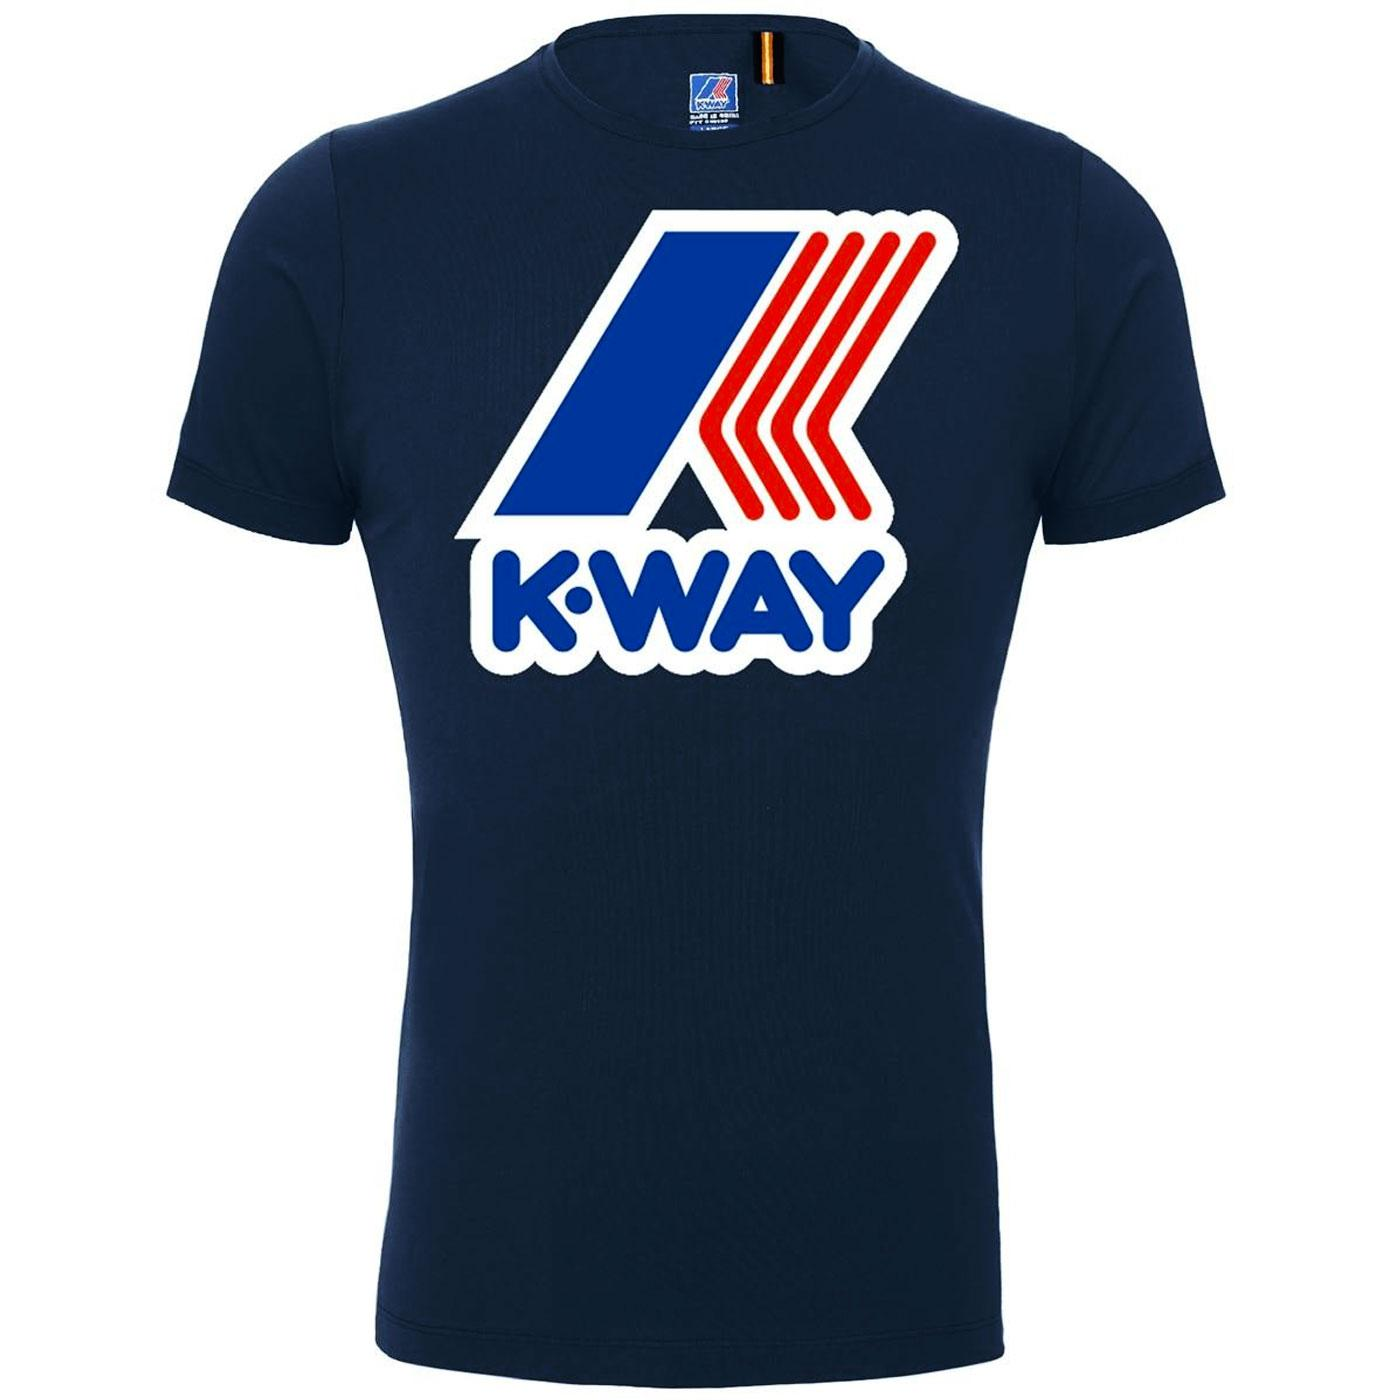 K-WAY Pete Macro Logo Retro 80s Tee (Blue Depths)